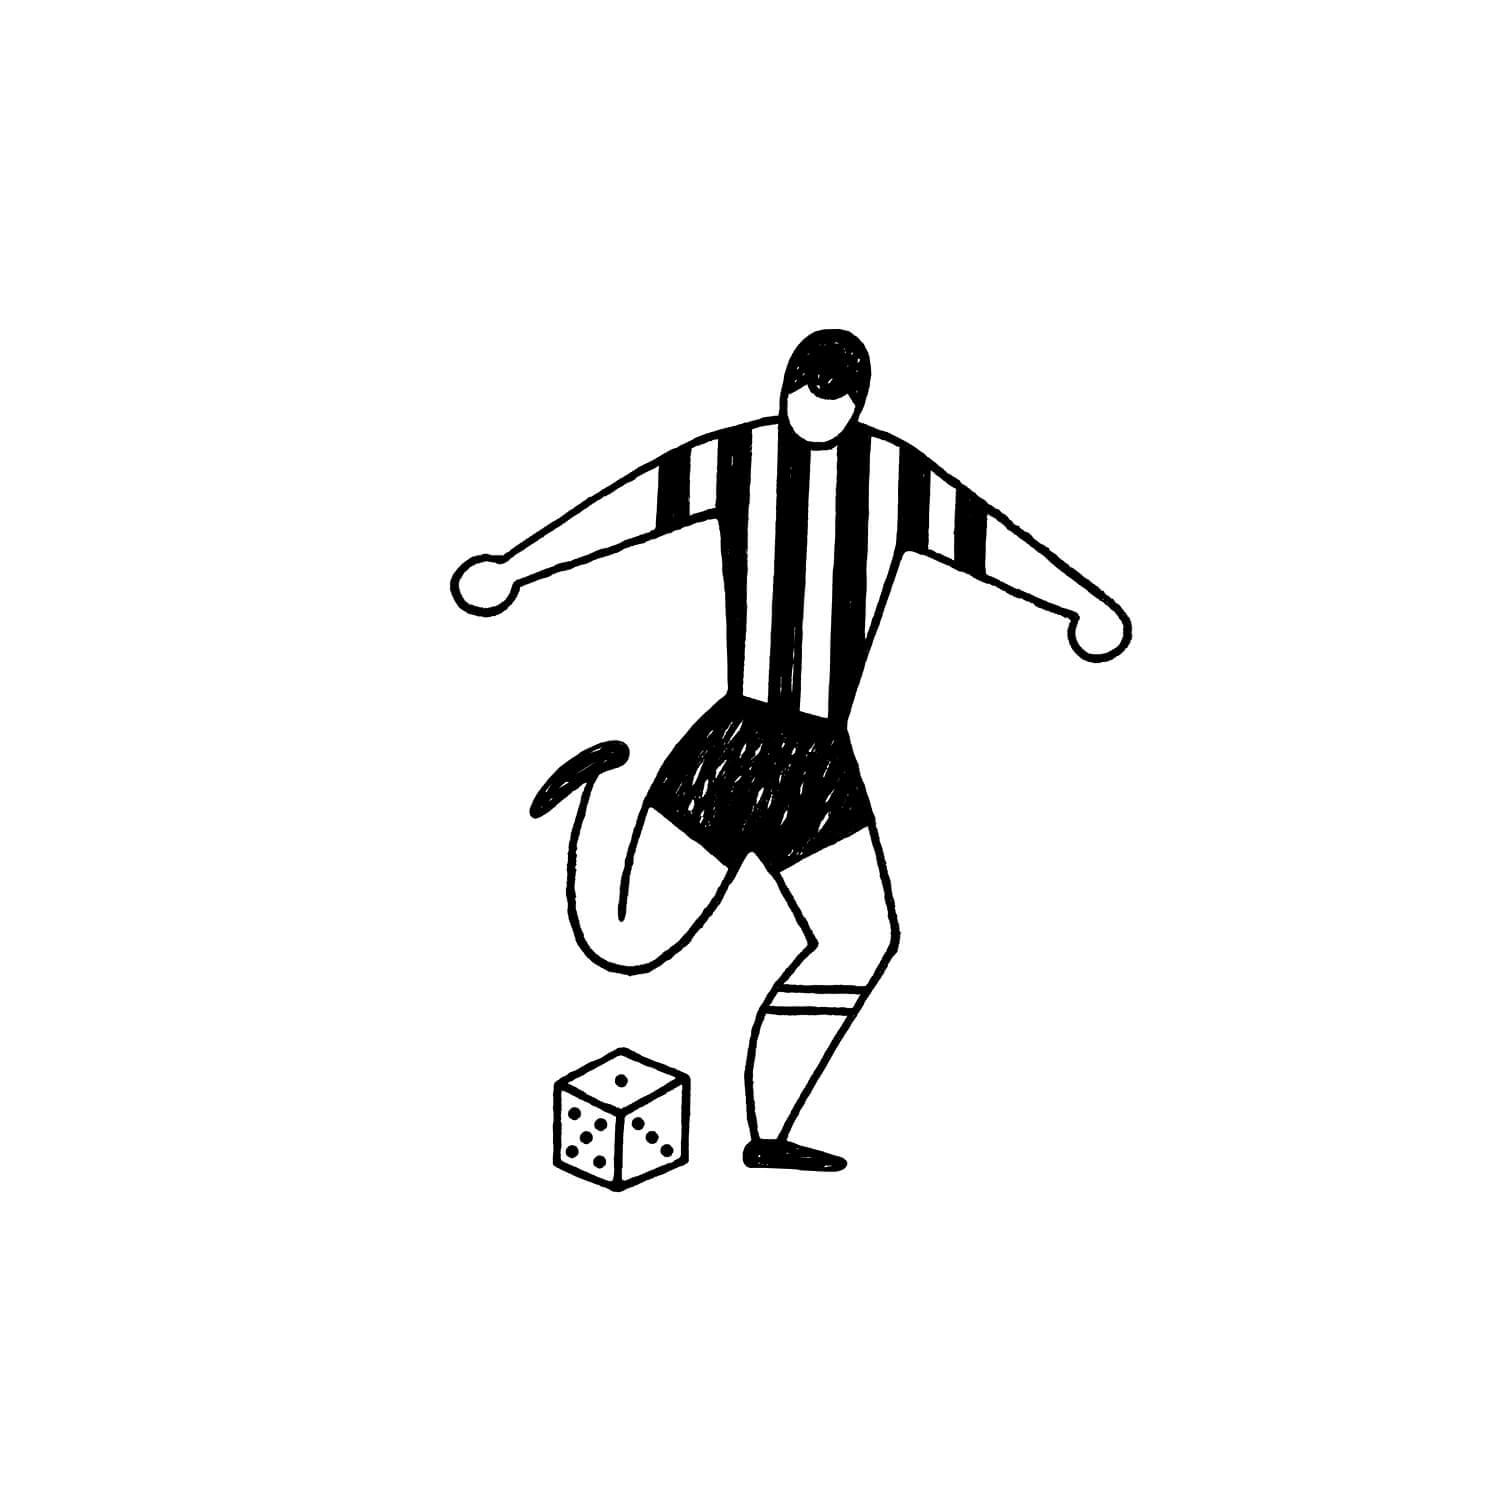 miguel porlan, illustration, the new yorker, spots, soccer, football